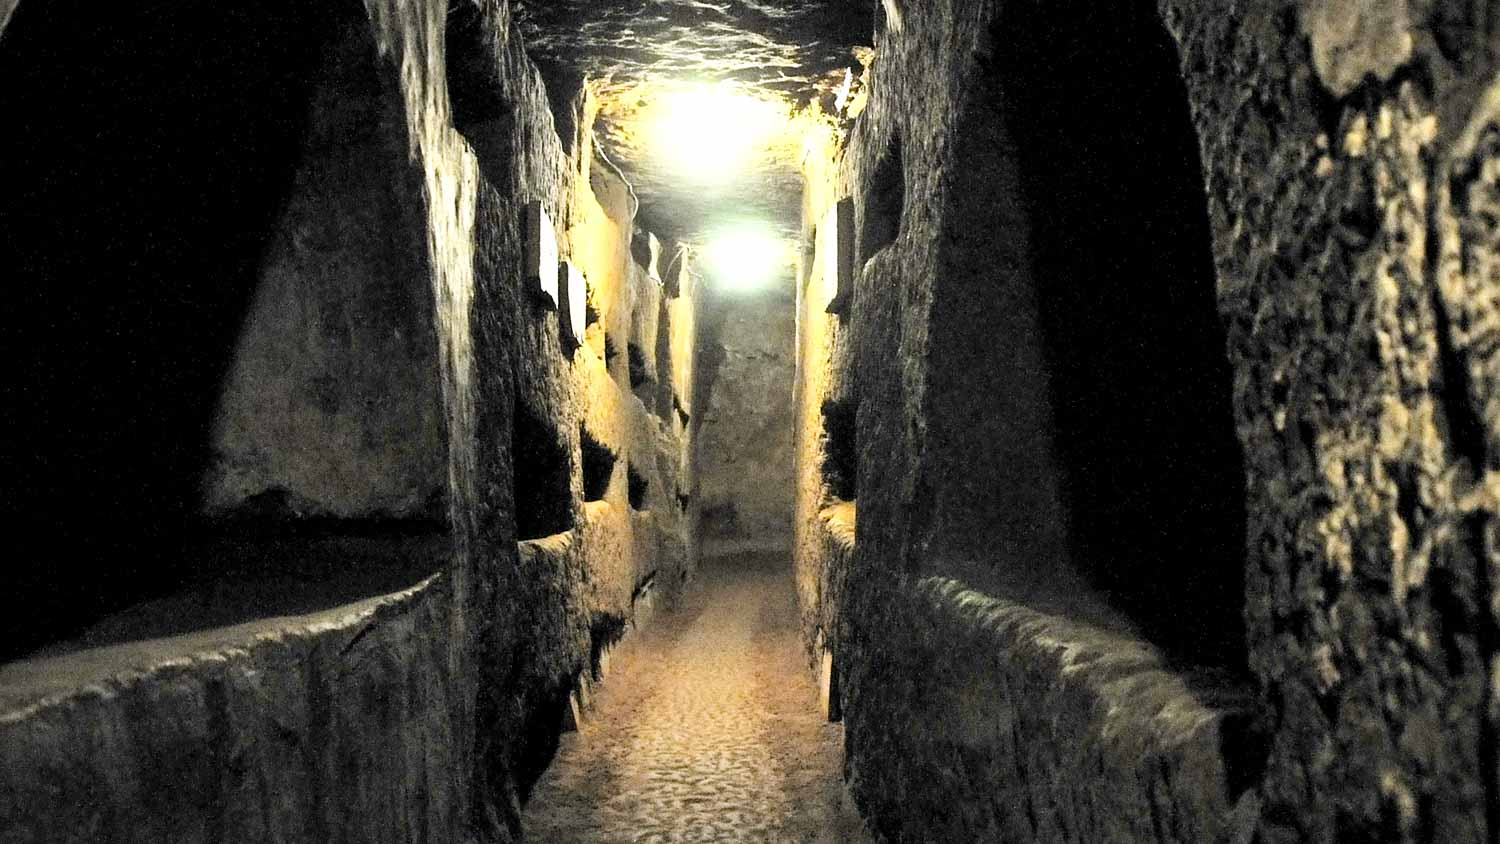 Catacombs of St. Domitilla